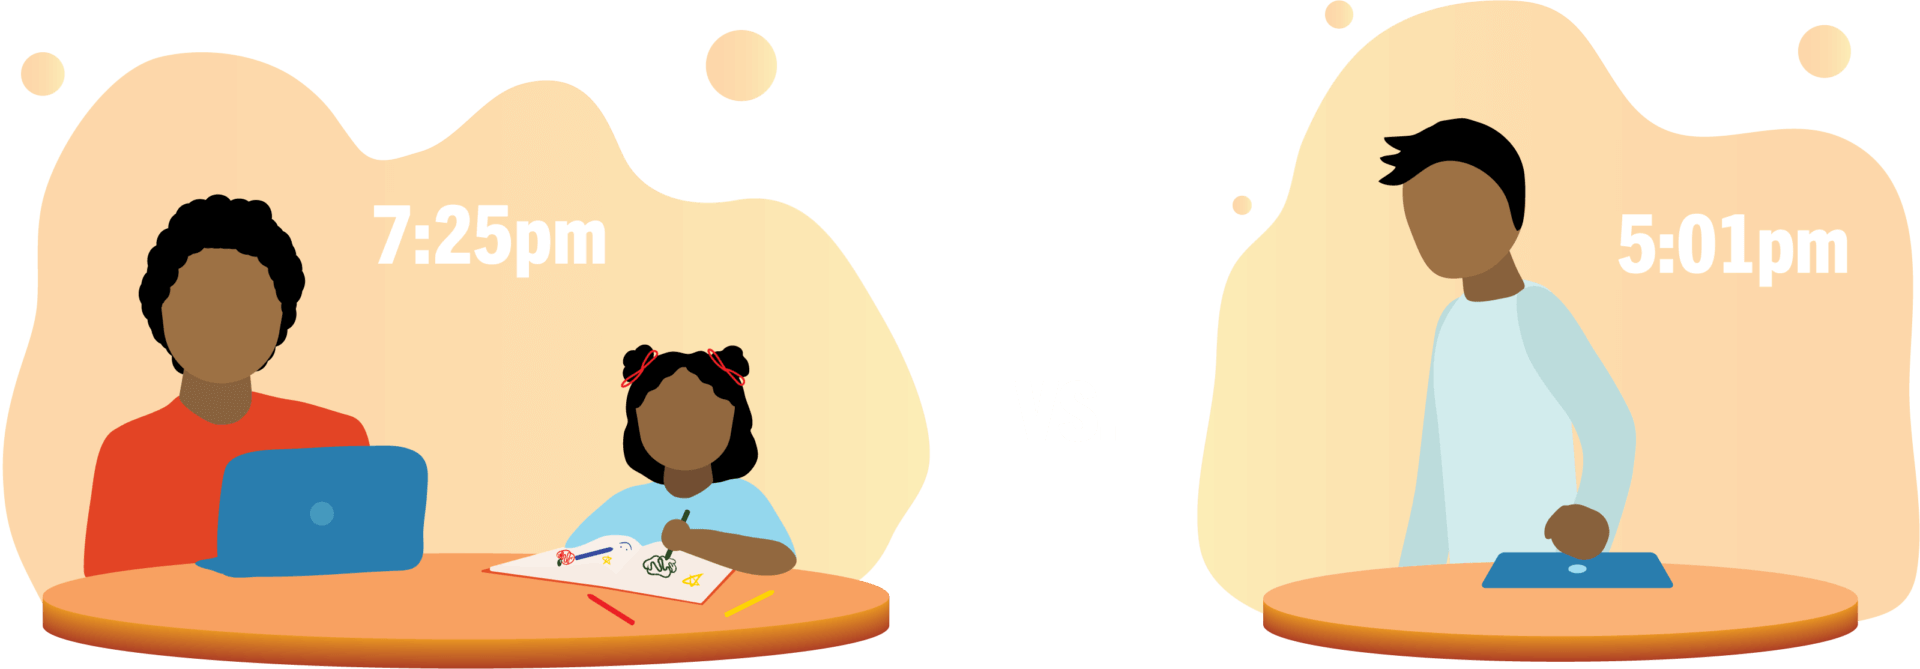 A worker pictured with her young school-aged child spends significantly more time working than a worker without children. The clock shows a later end time for the worker who has to supervise her child than the worker who doesn't.